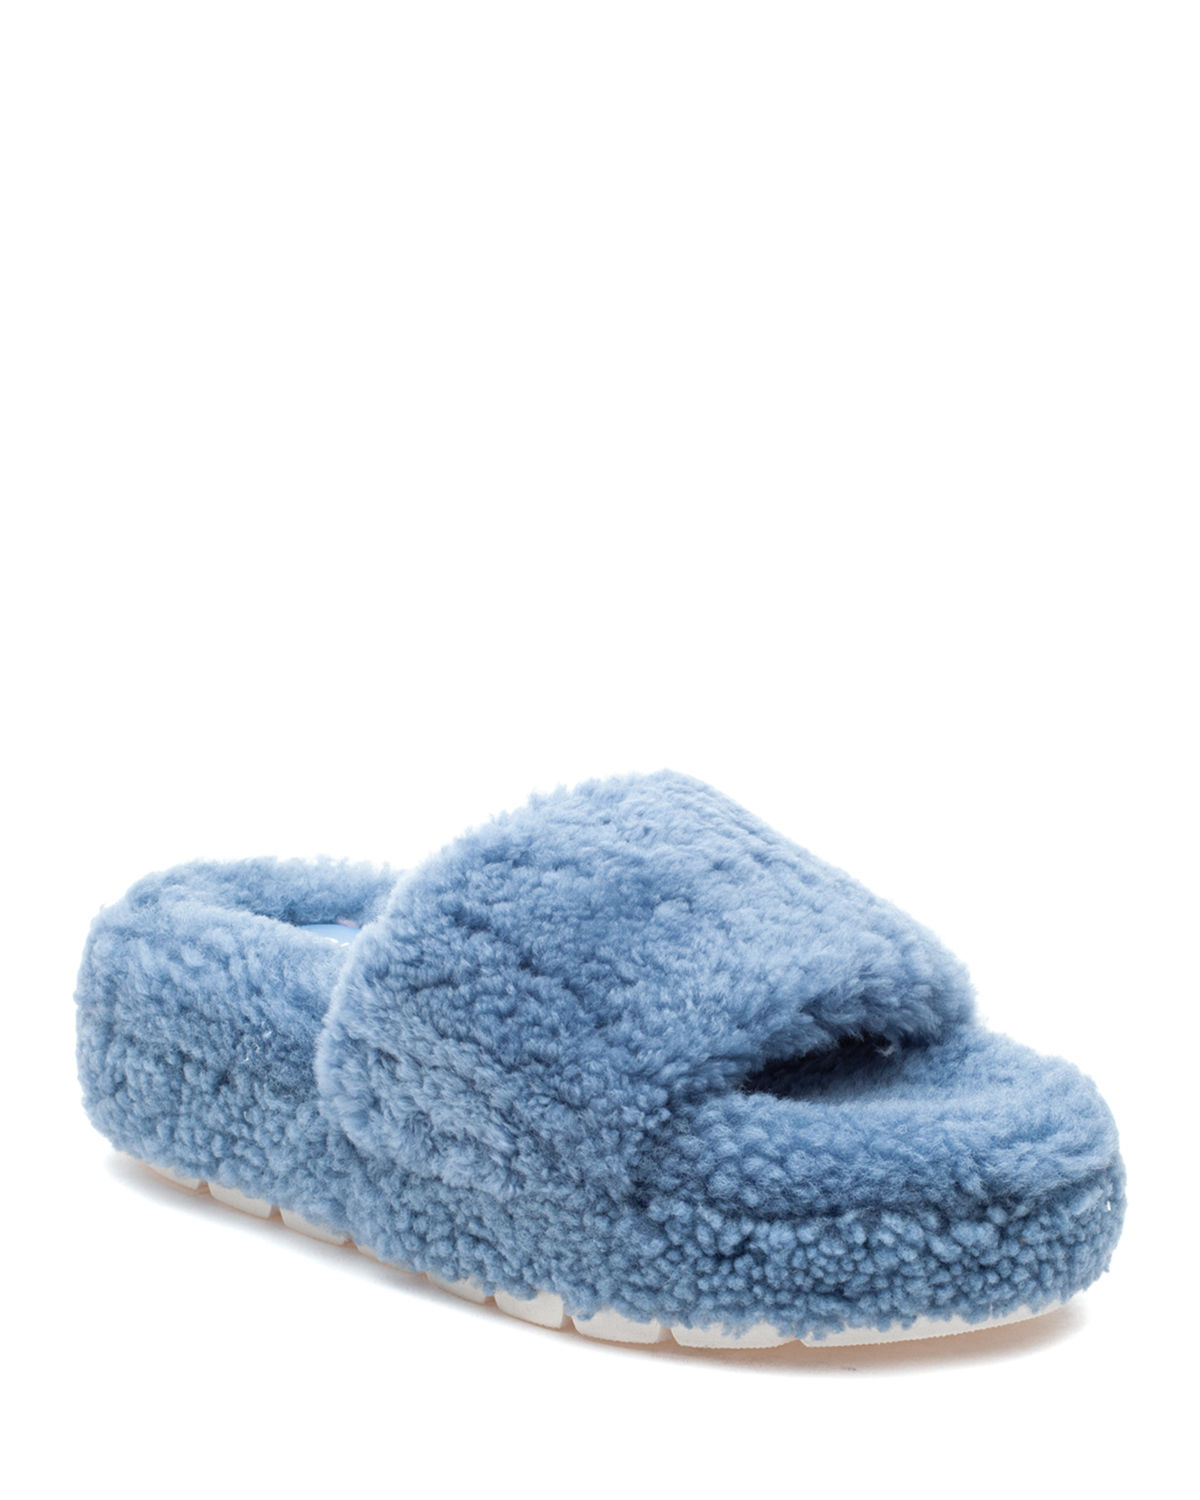 Bryce Shearling Comfy Slippers